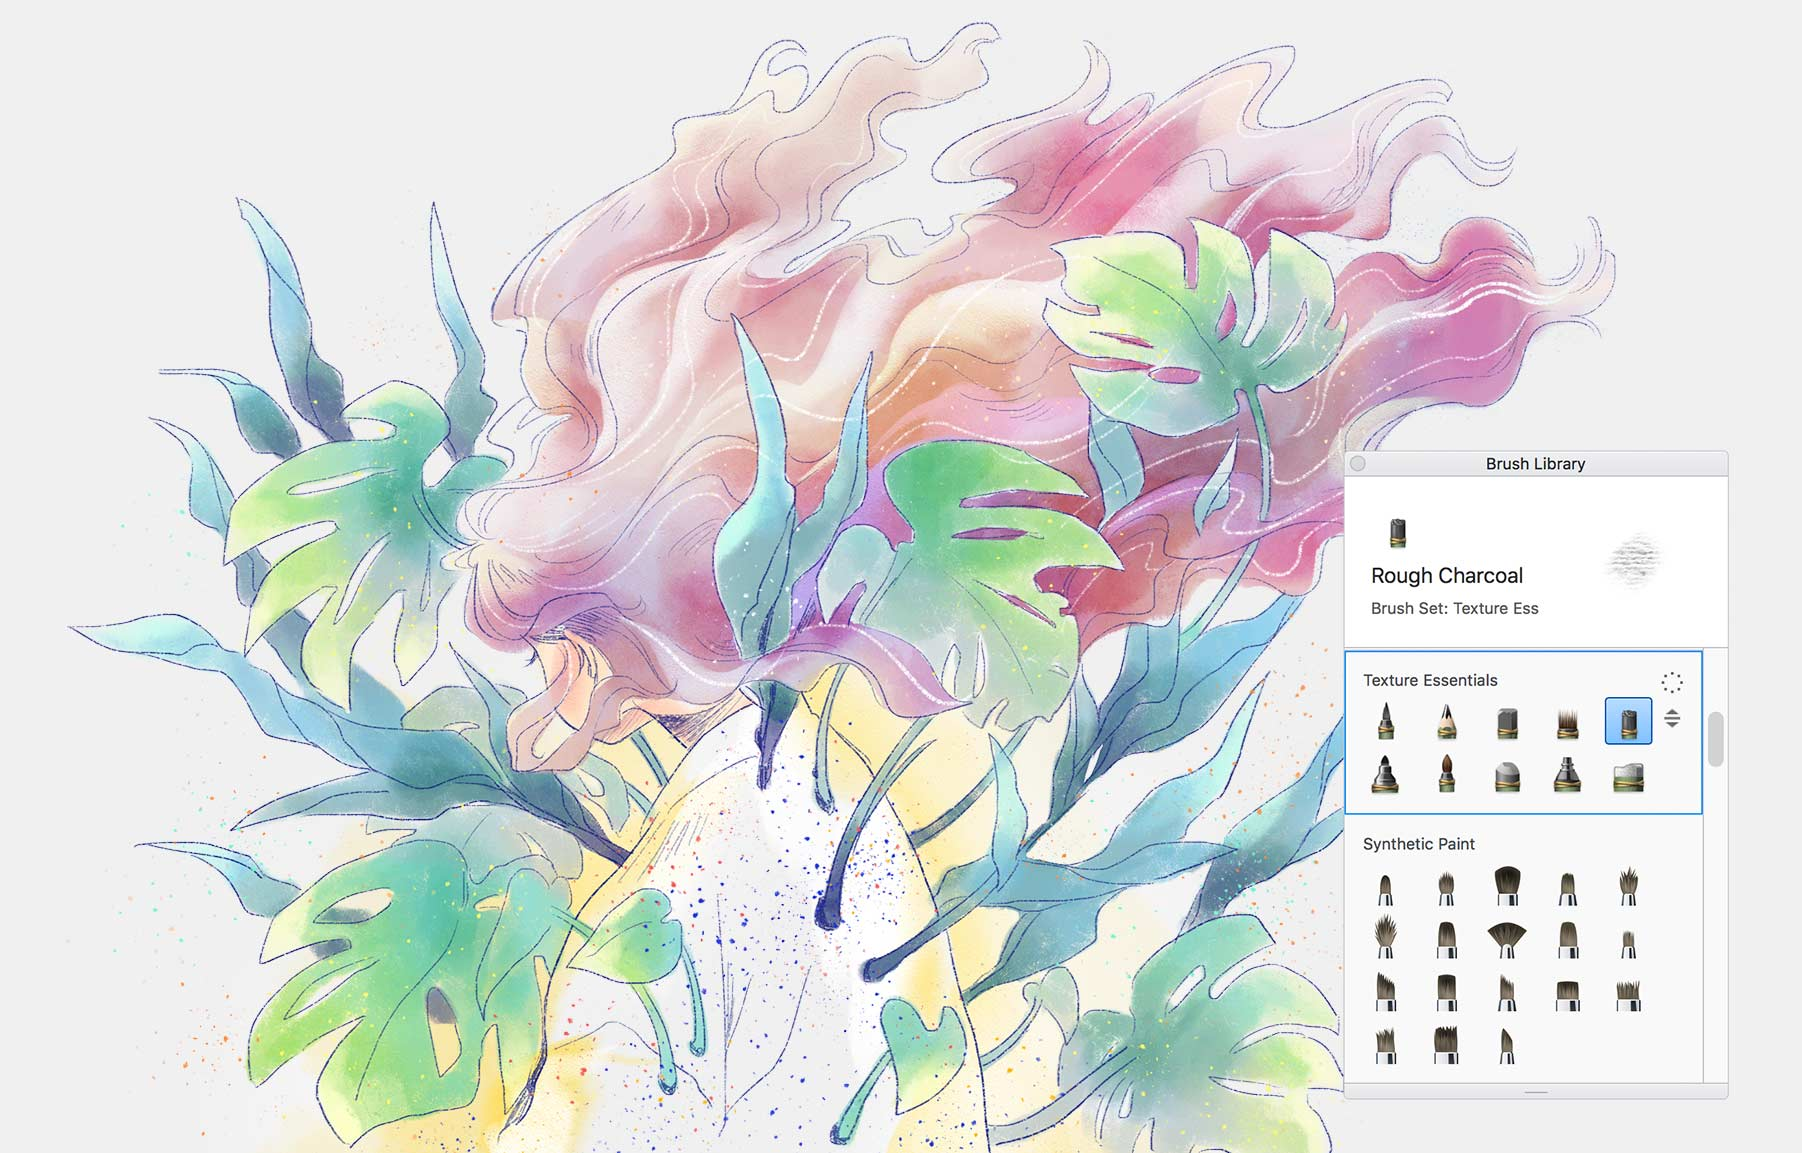 Autodesk sketch book ソフト